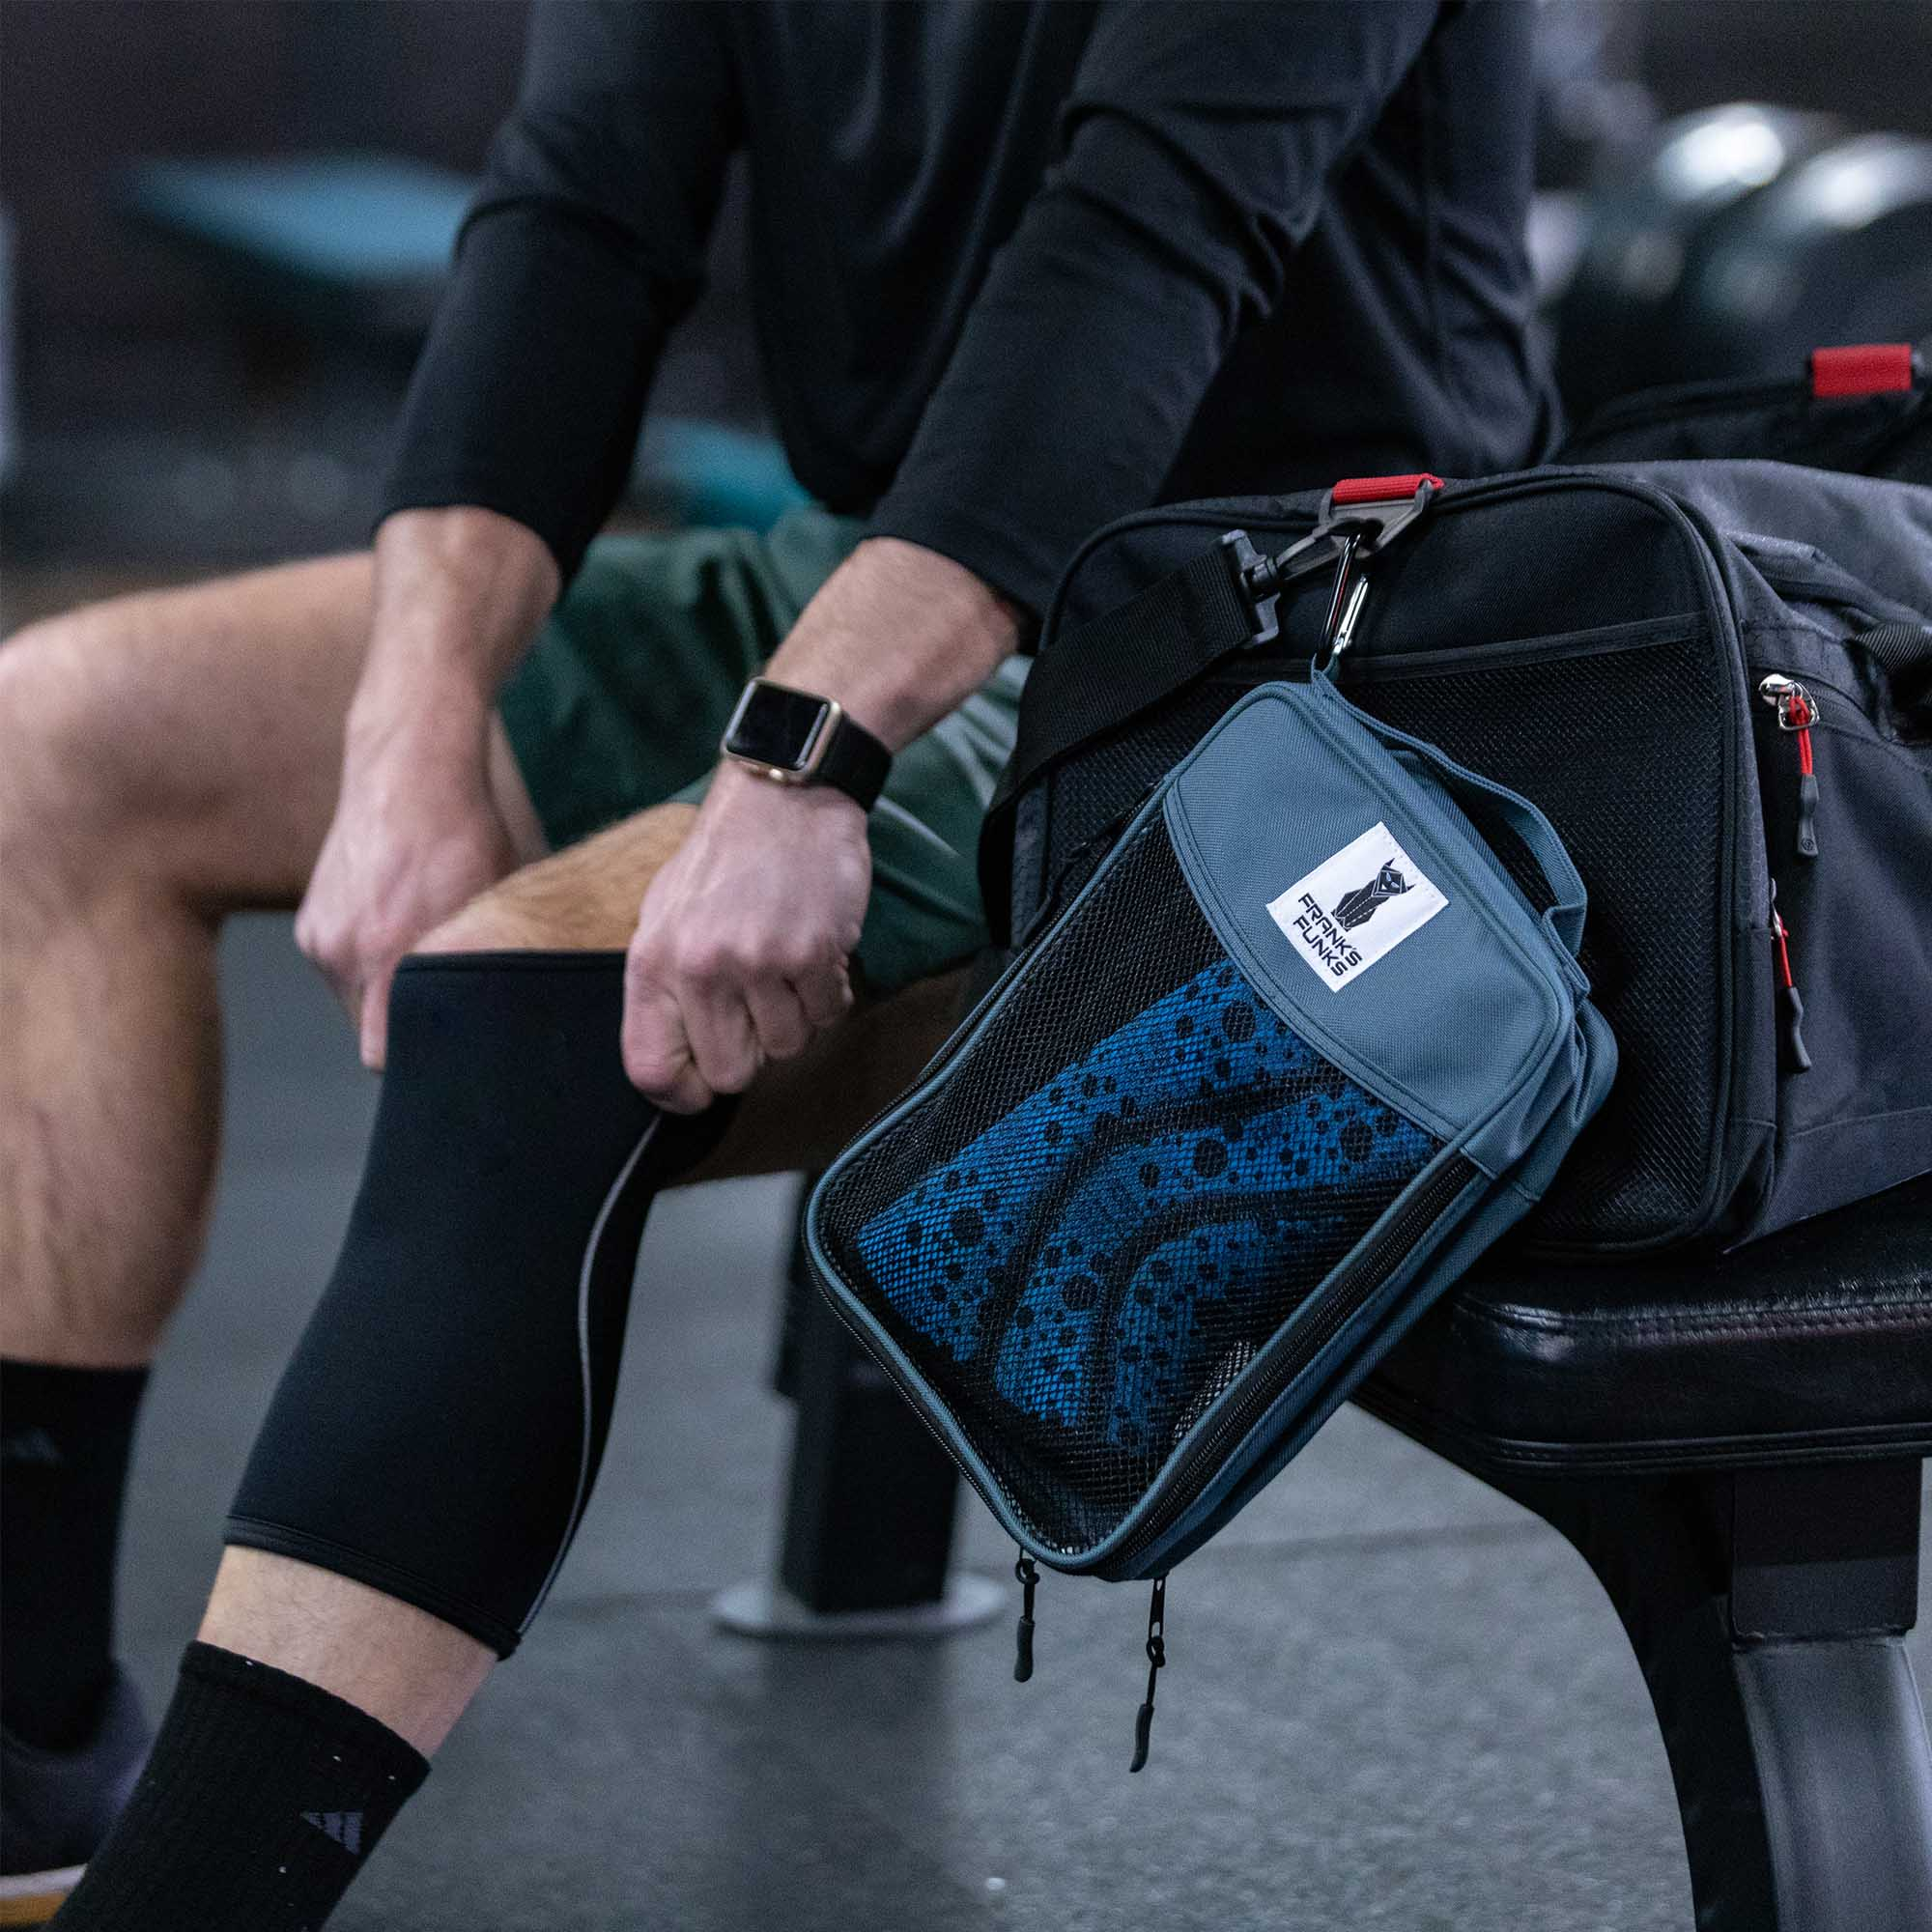 Fitness Gear Lifestyle Product Photography by Results Imagery